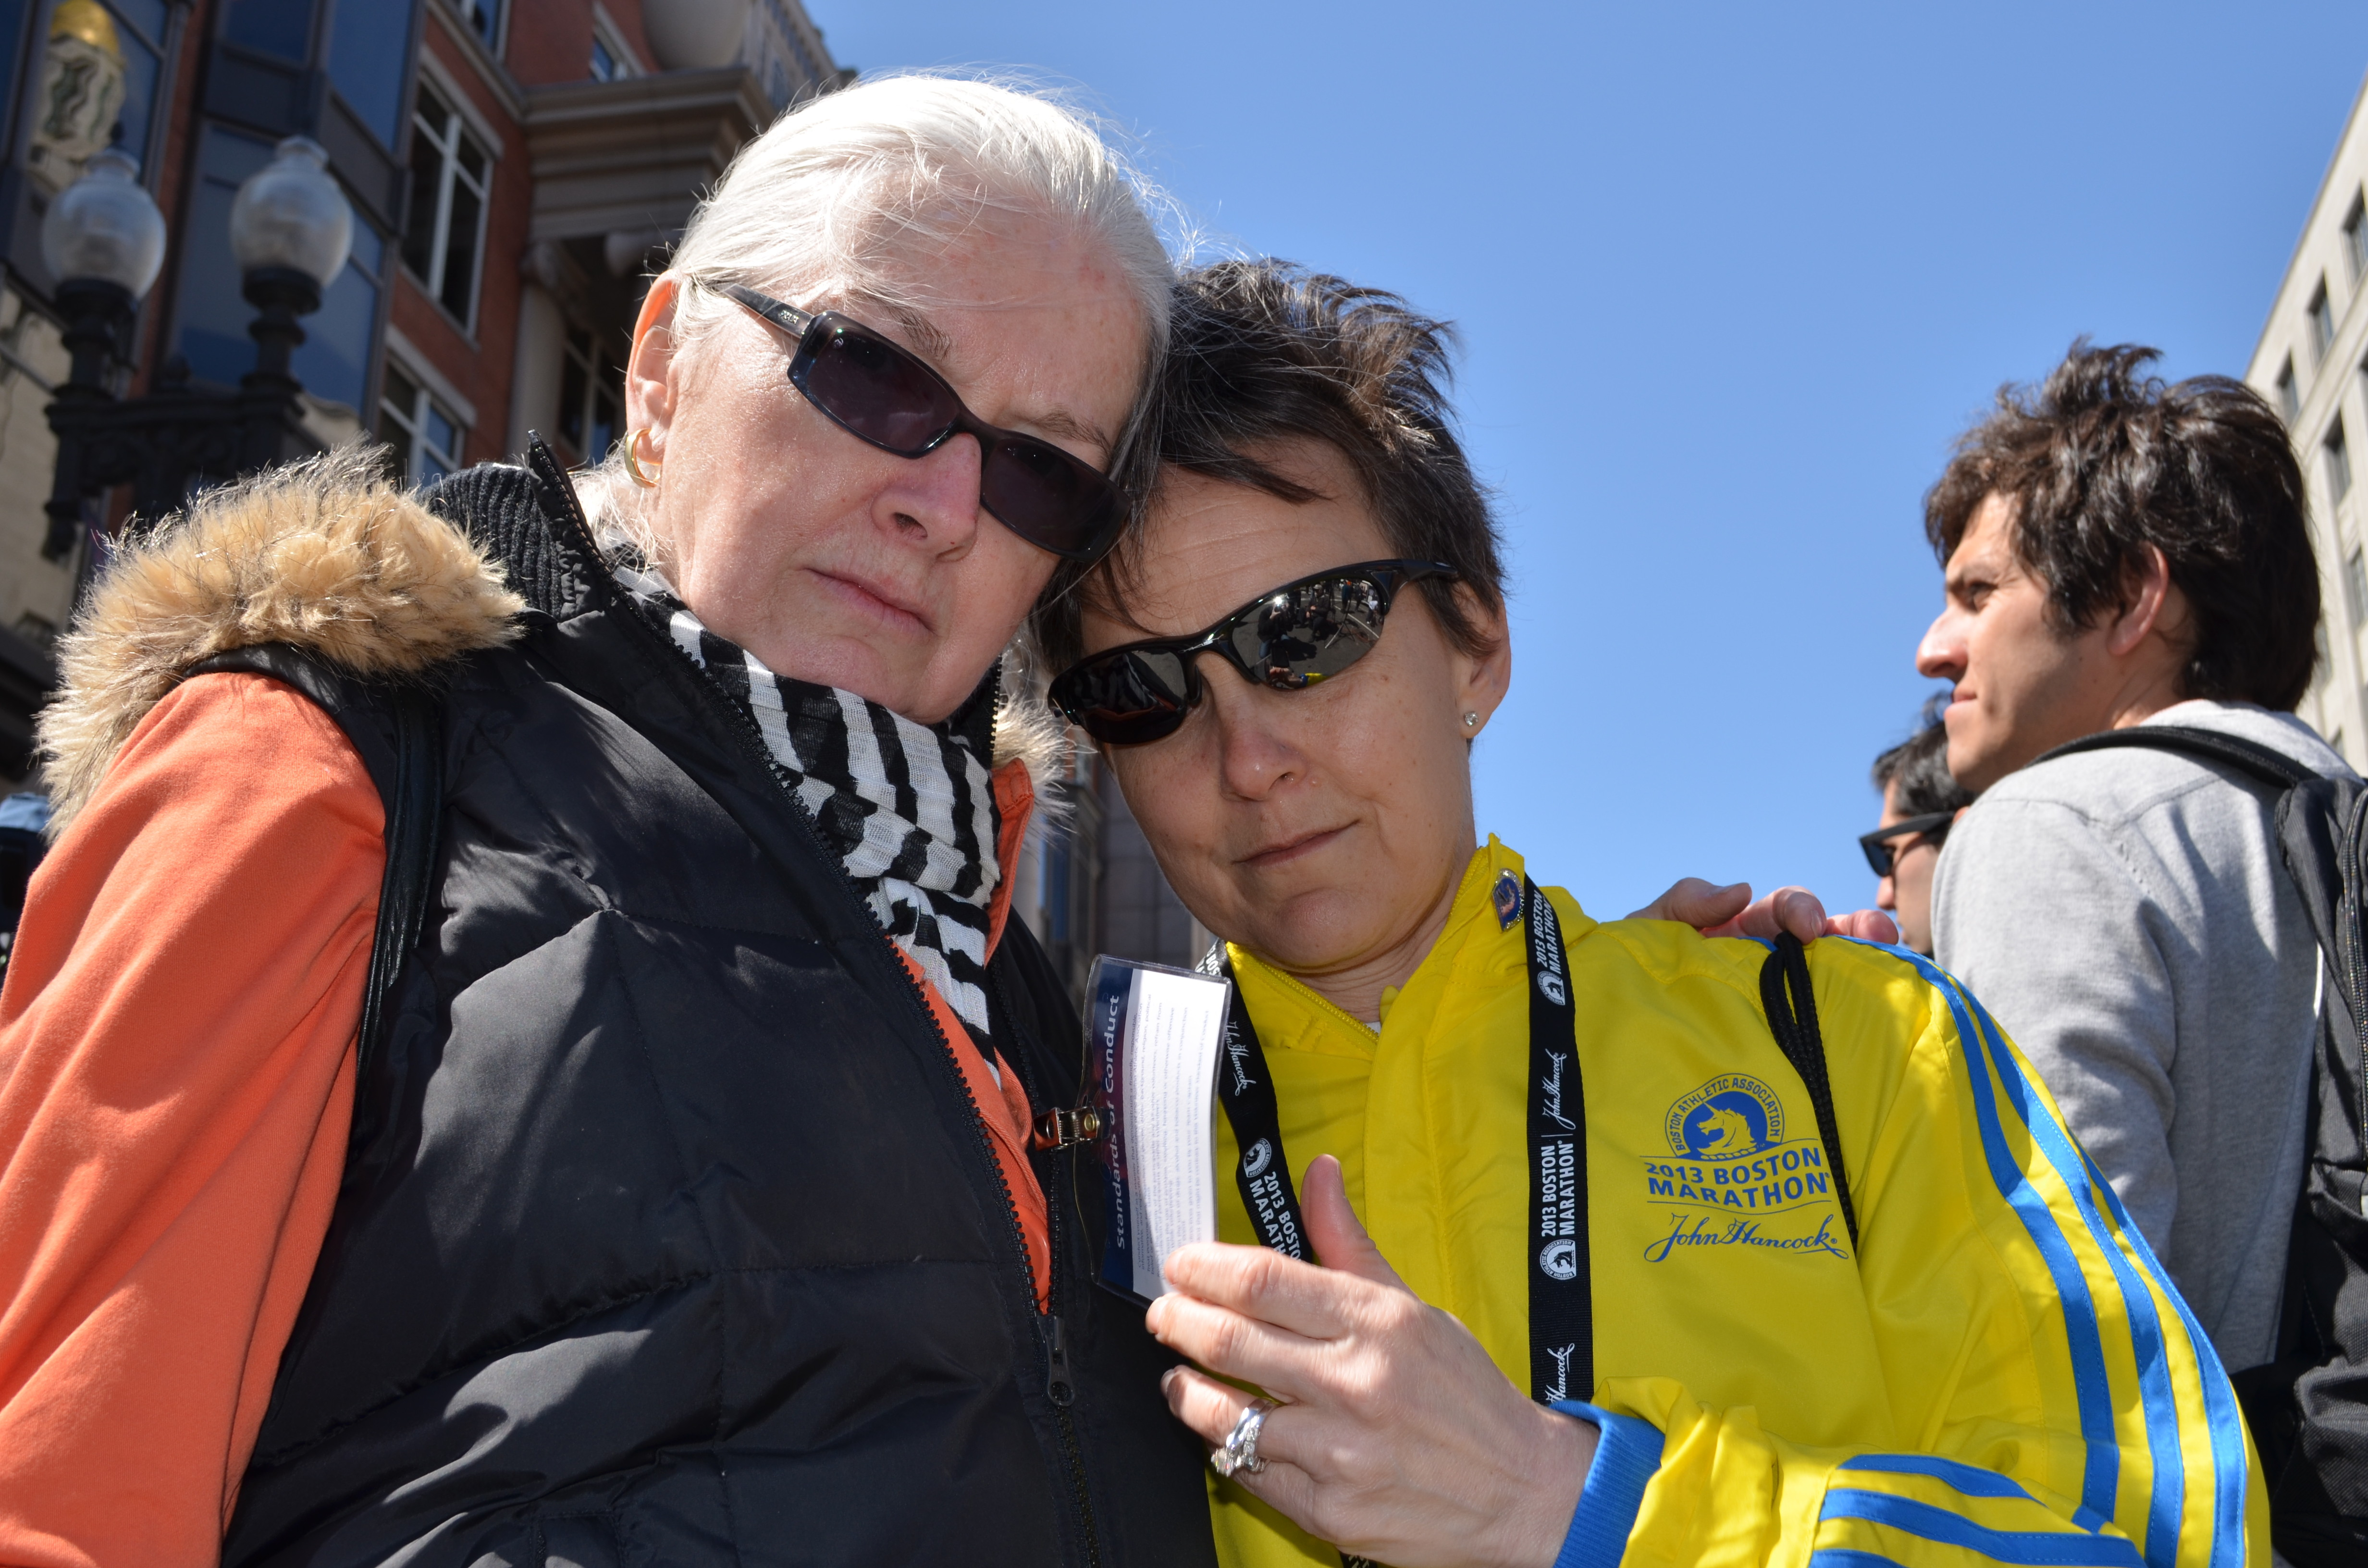 boston marathon runners pat cohen and kim stemple